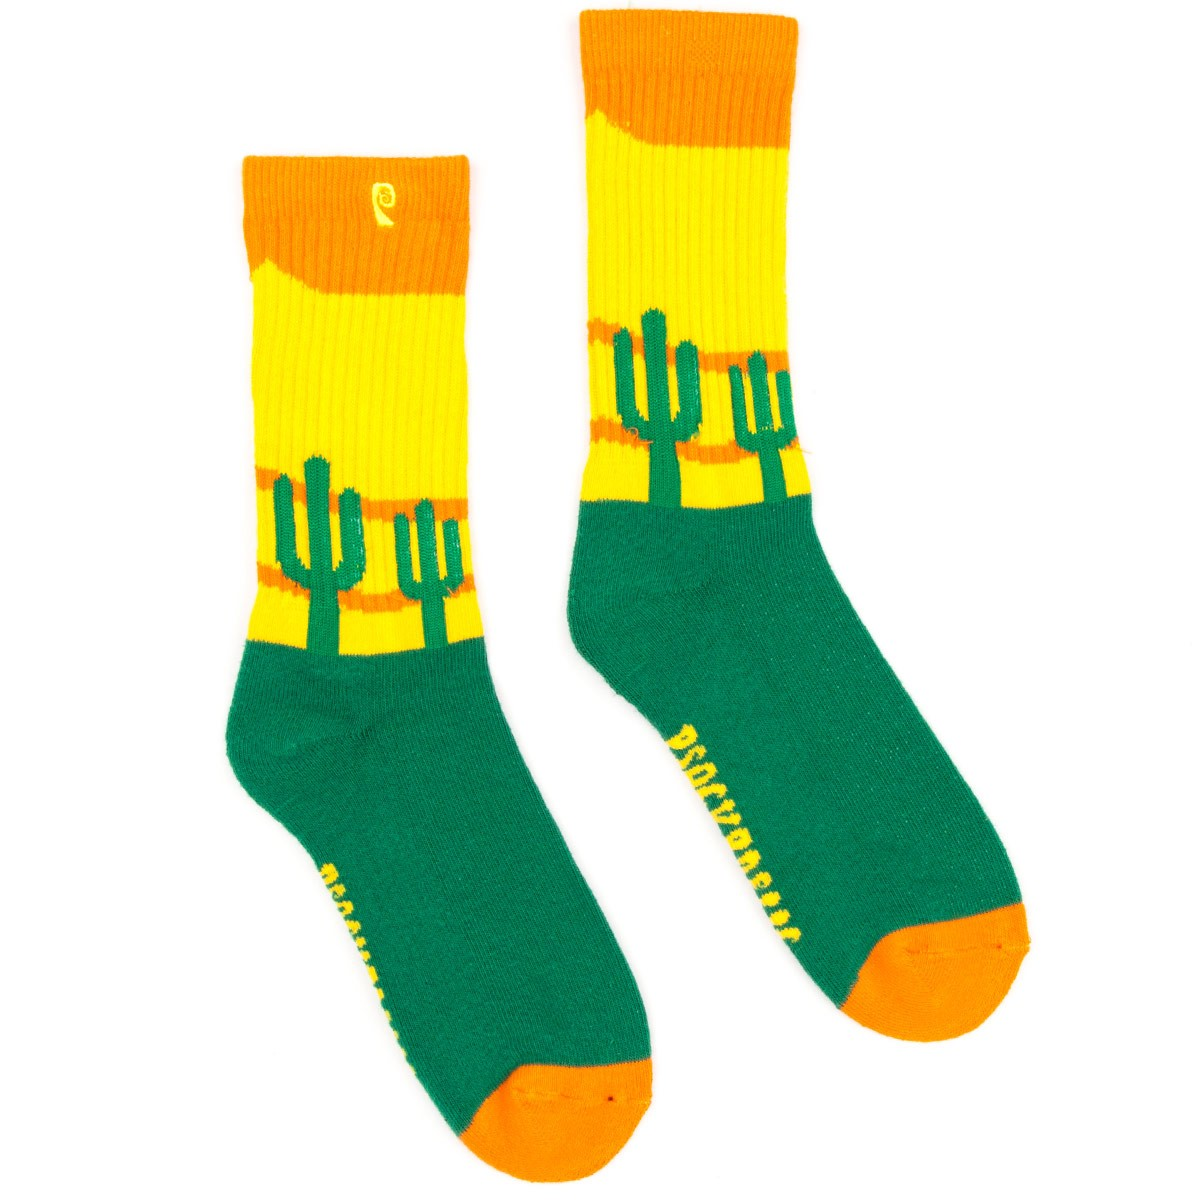 Psockadelic Cooler Cactus Socks - Green/Yellow/Orange